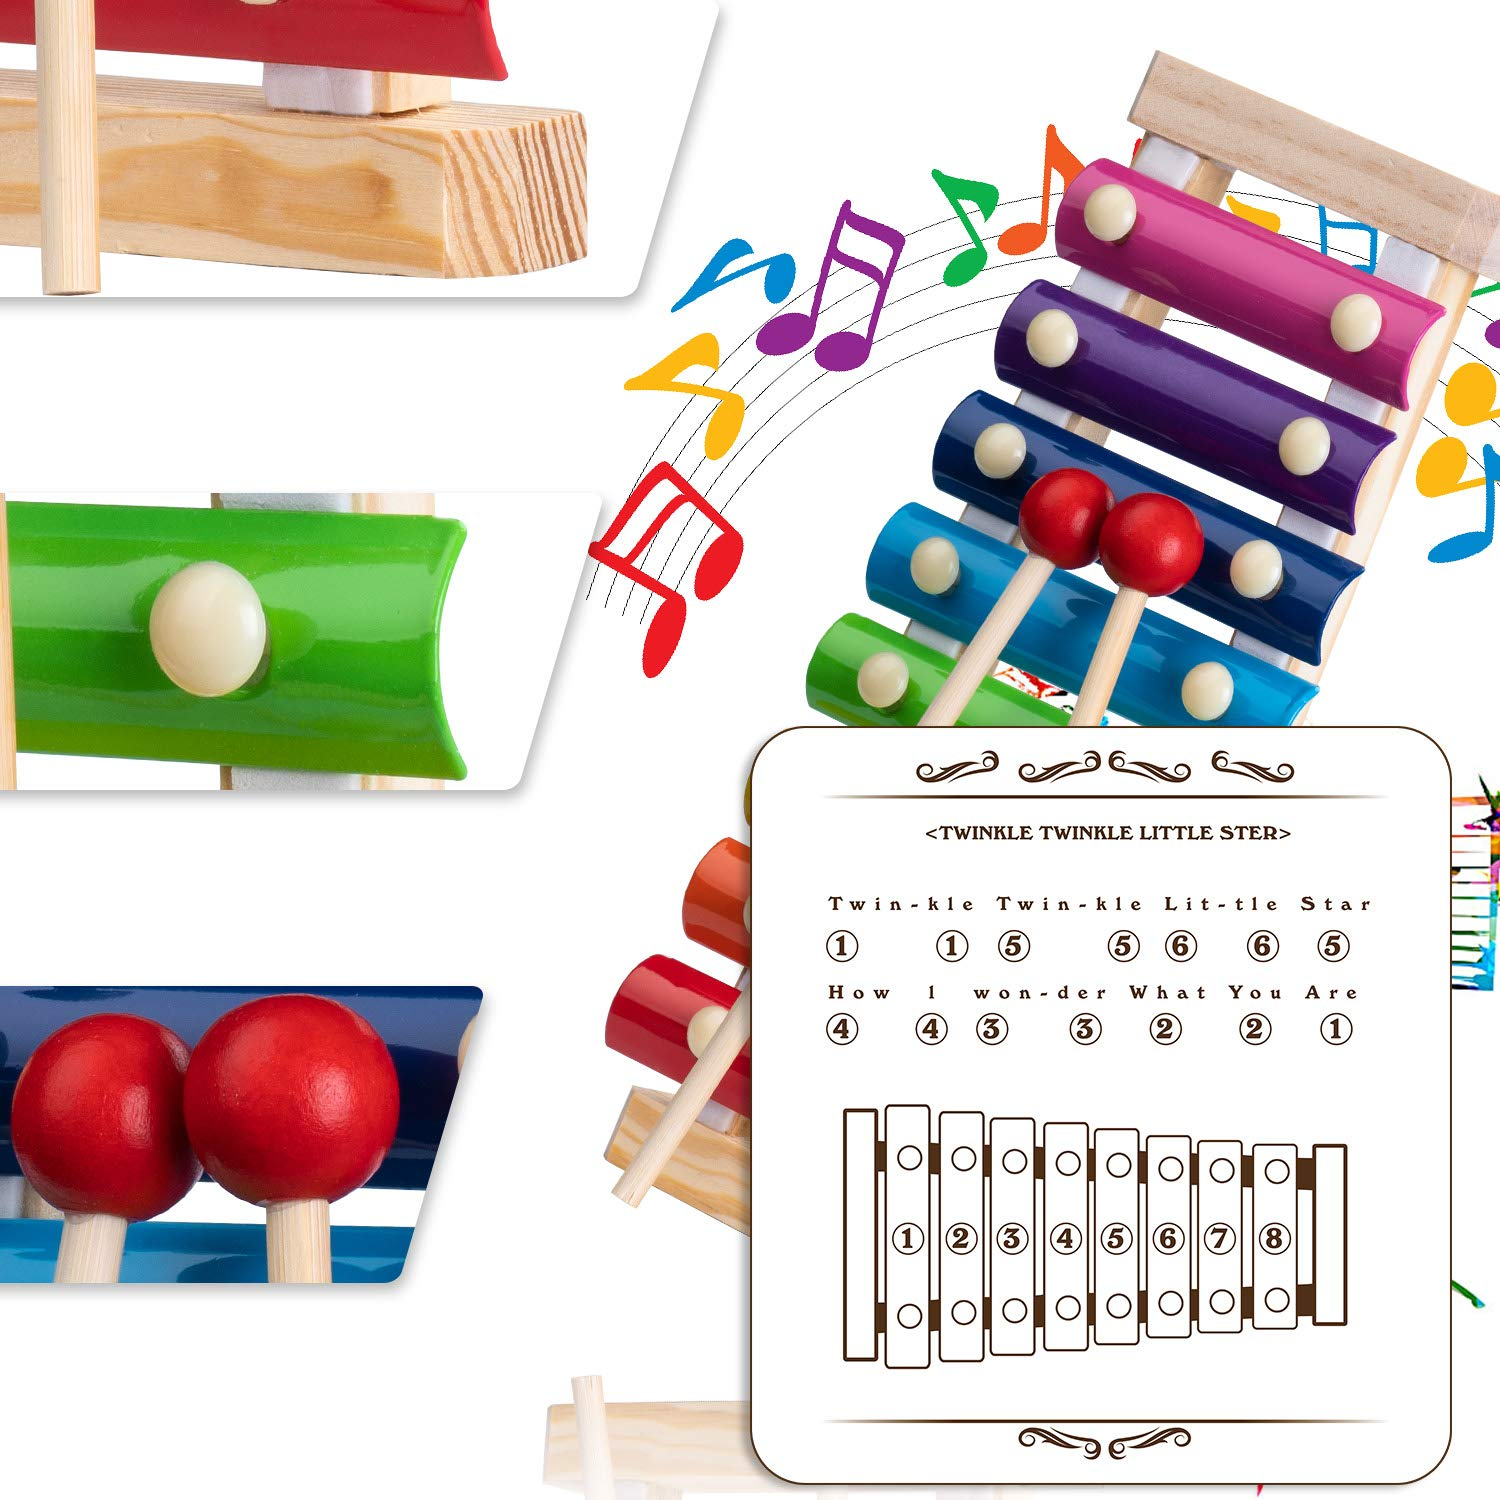 Xylophone for Kids Set Of Three Instrument Toys With Two Xylophone,One caterpillar toy-JiangChuan(2019 New Design),Best Birthday/Holiday Gift For Children's with Two Safe Mallets,Free Music socure by JiangChuan (Image #7)